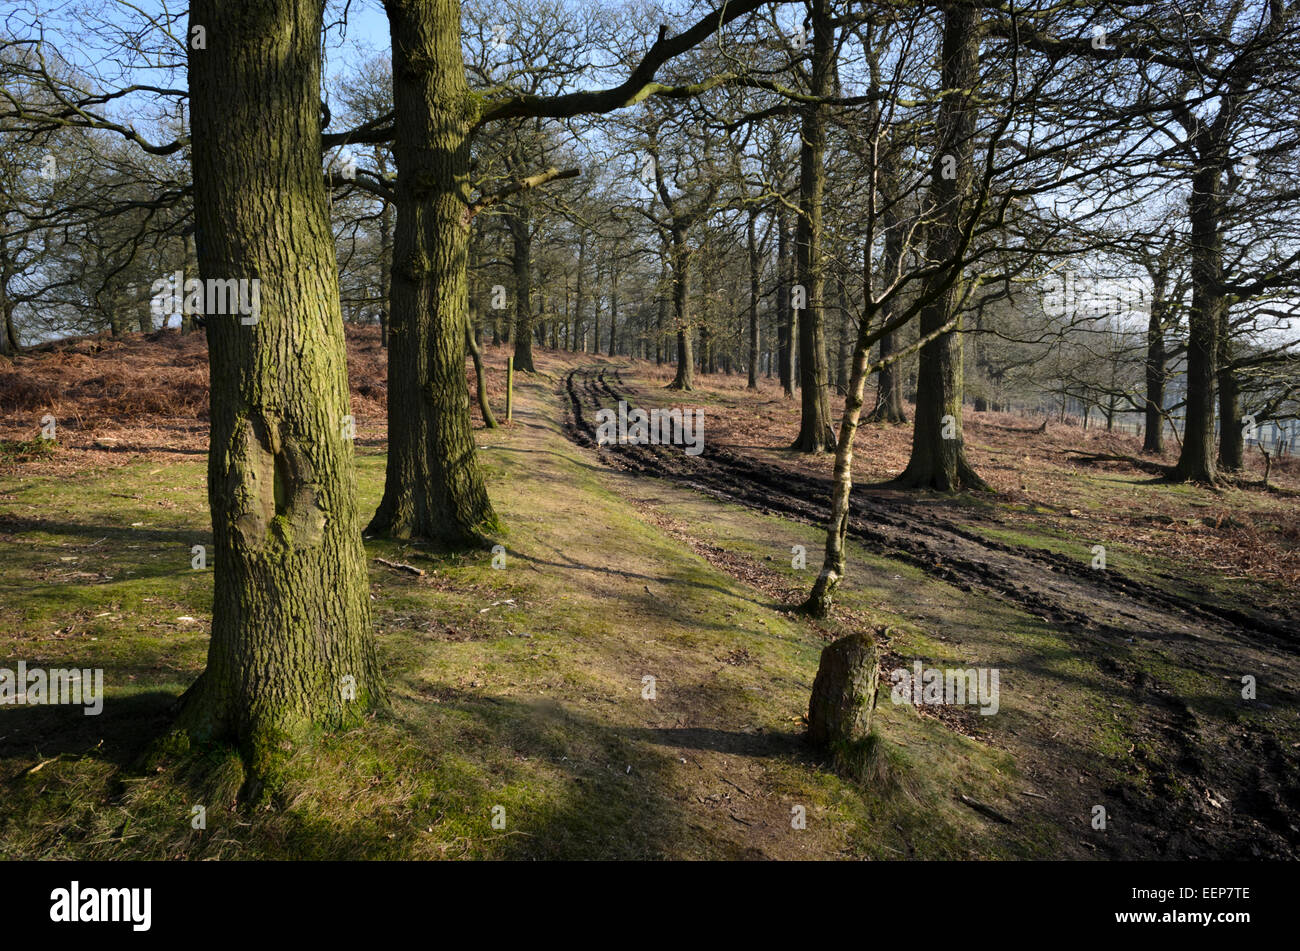 Kings Wood is a site of special scientific interest (SSSI) at Trentham, Staffordshire, UK - Stock Image